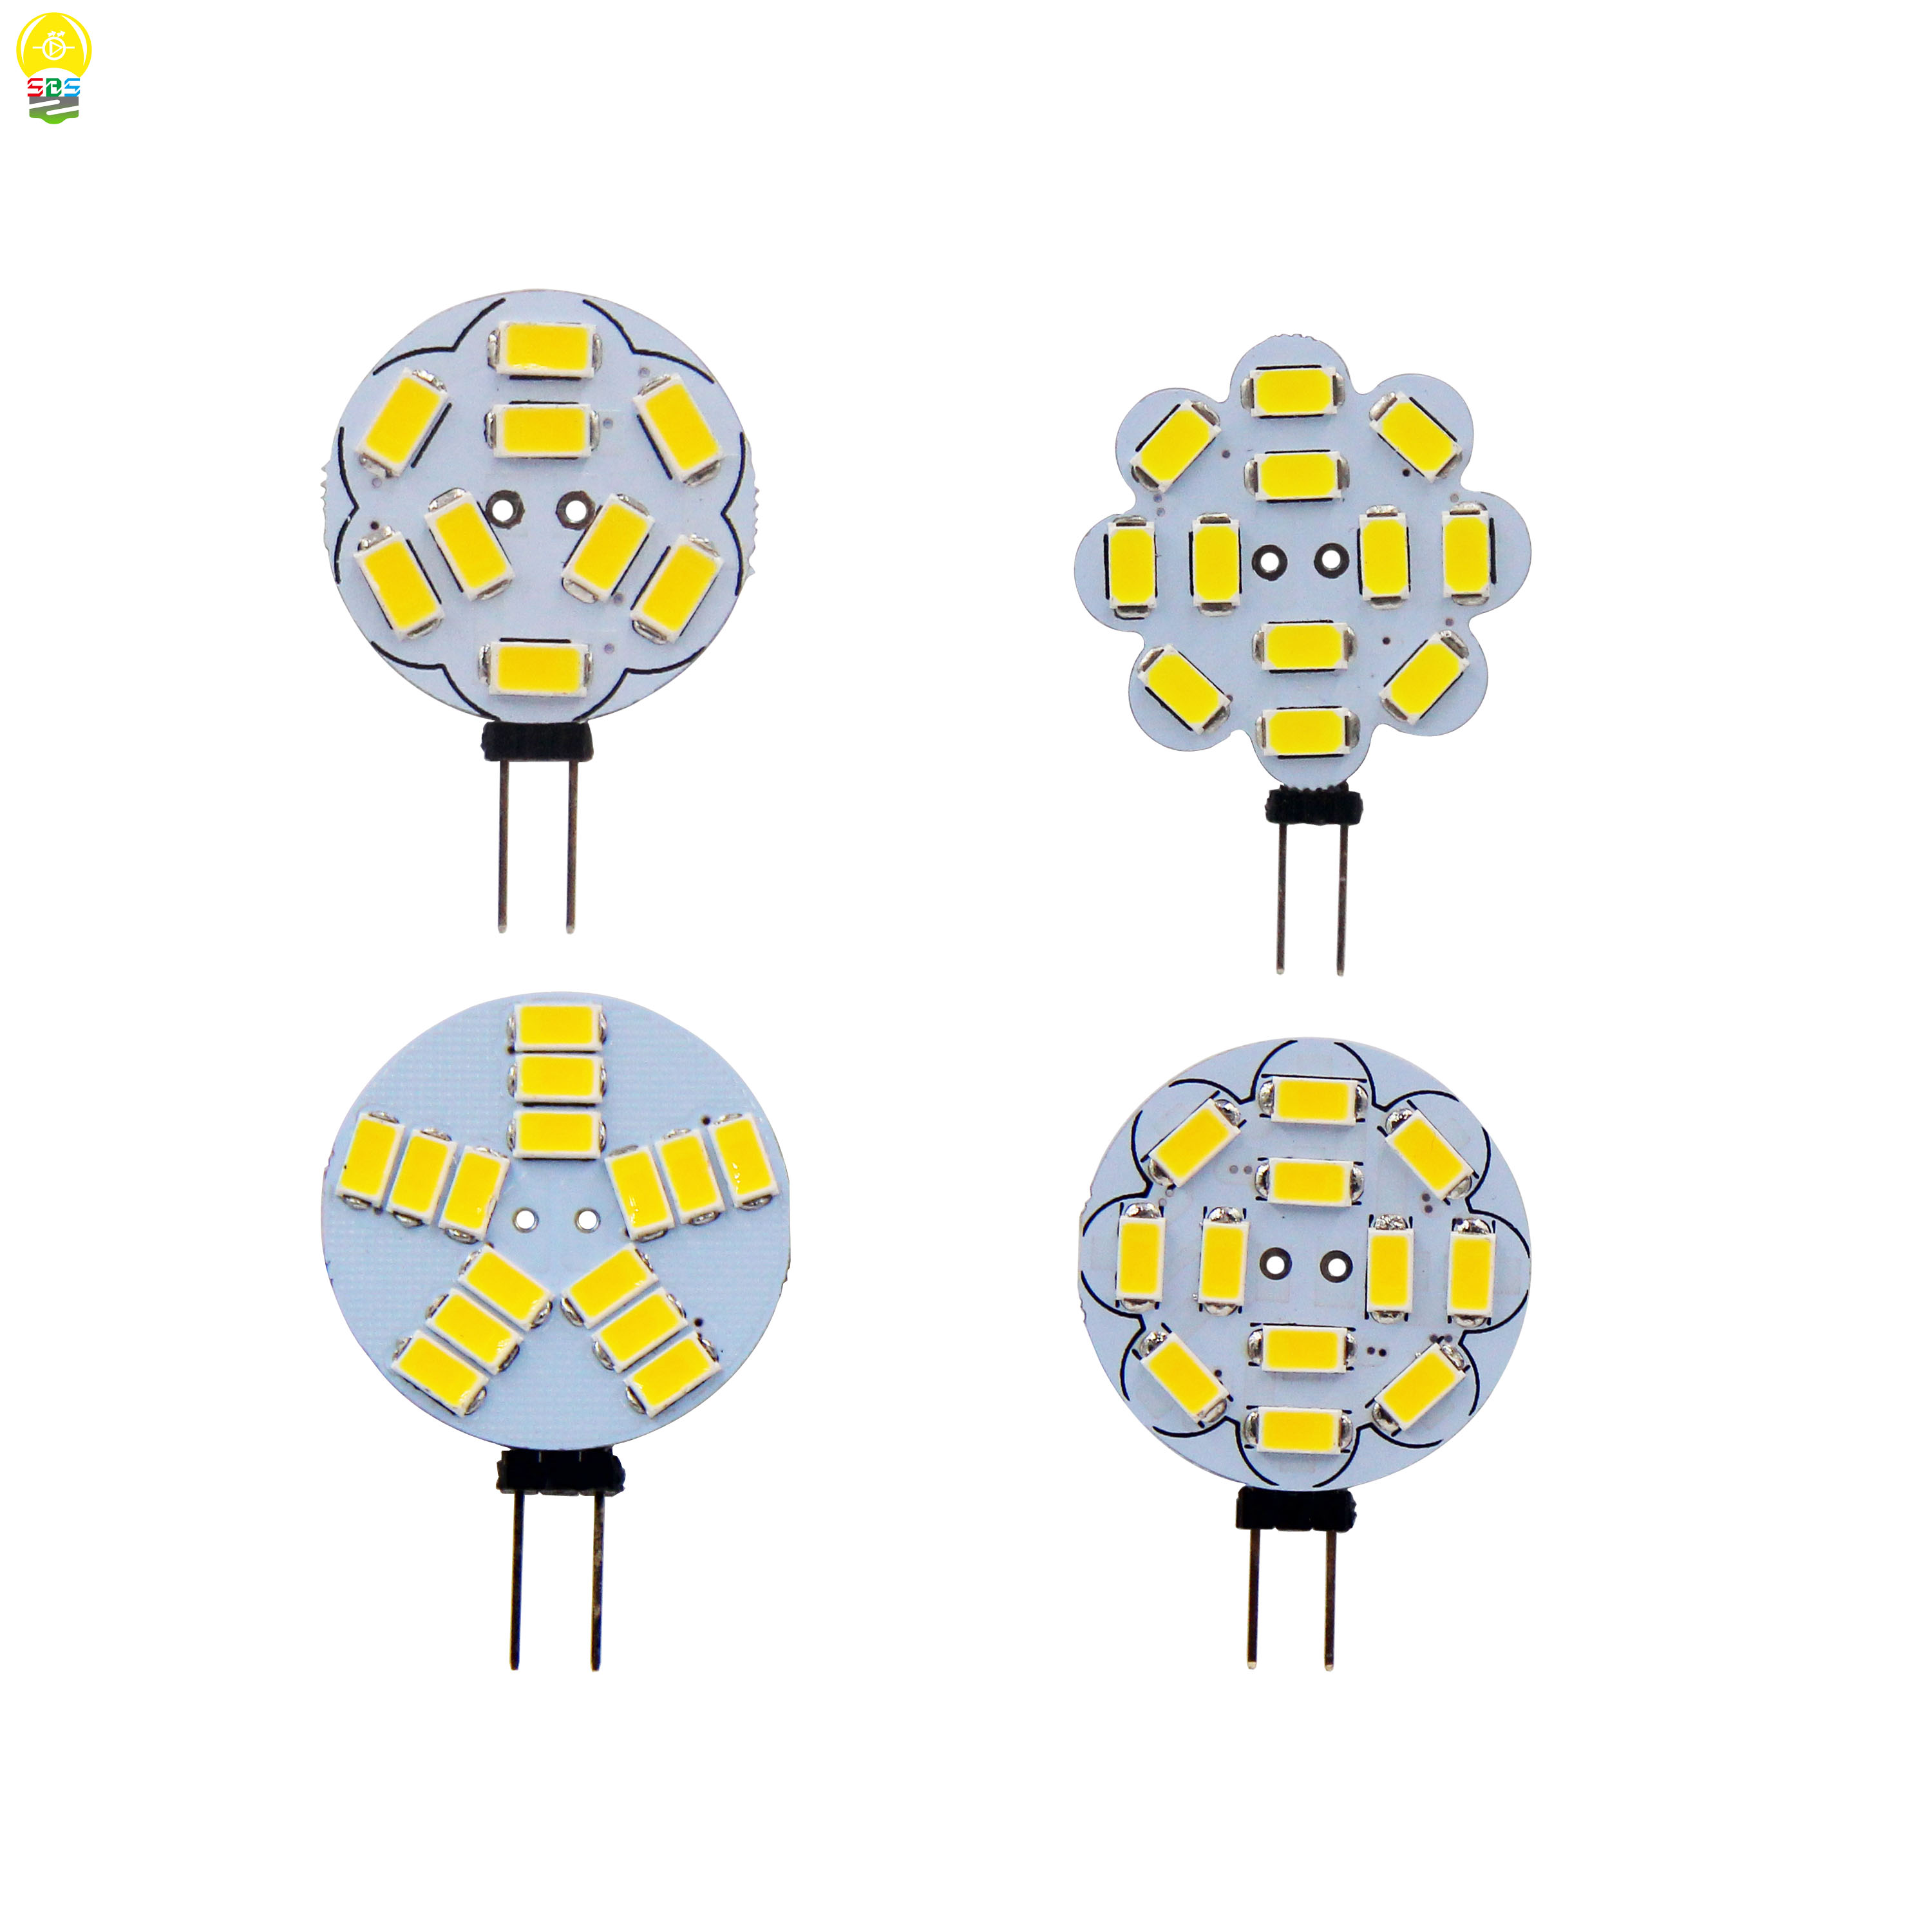 G4 Led Lamp 5W Bulb 2W 3W AC DC 12V 5730 SMD Replace Halogen Lamp 120 Degrees Beam Angle LED Bulb Lamps Warranty Lamparas